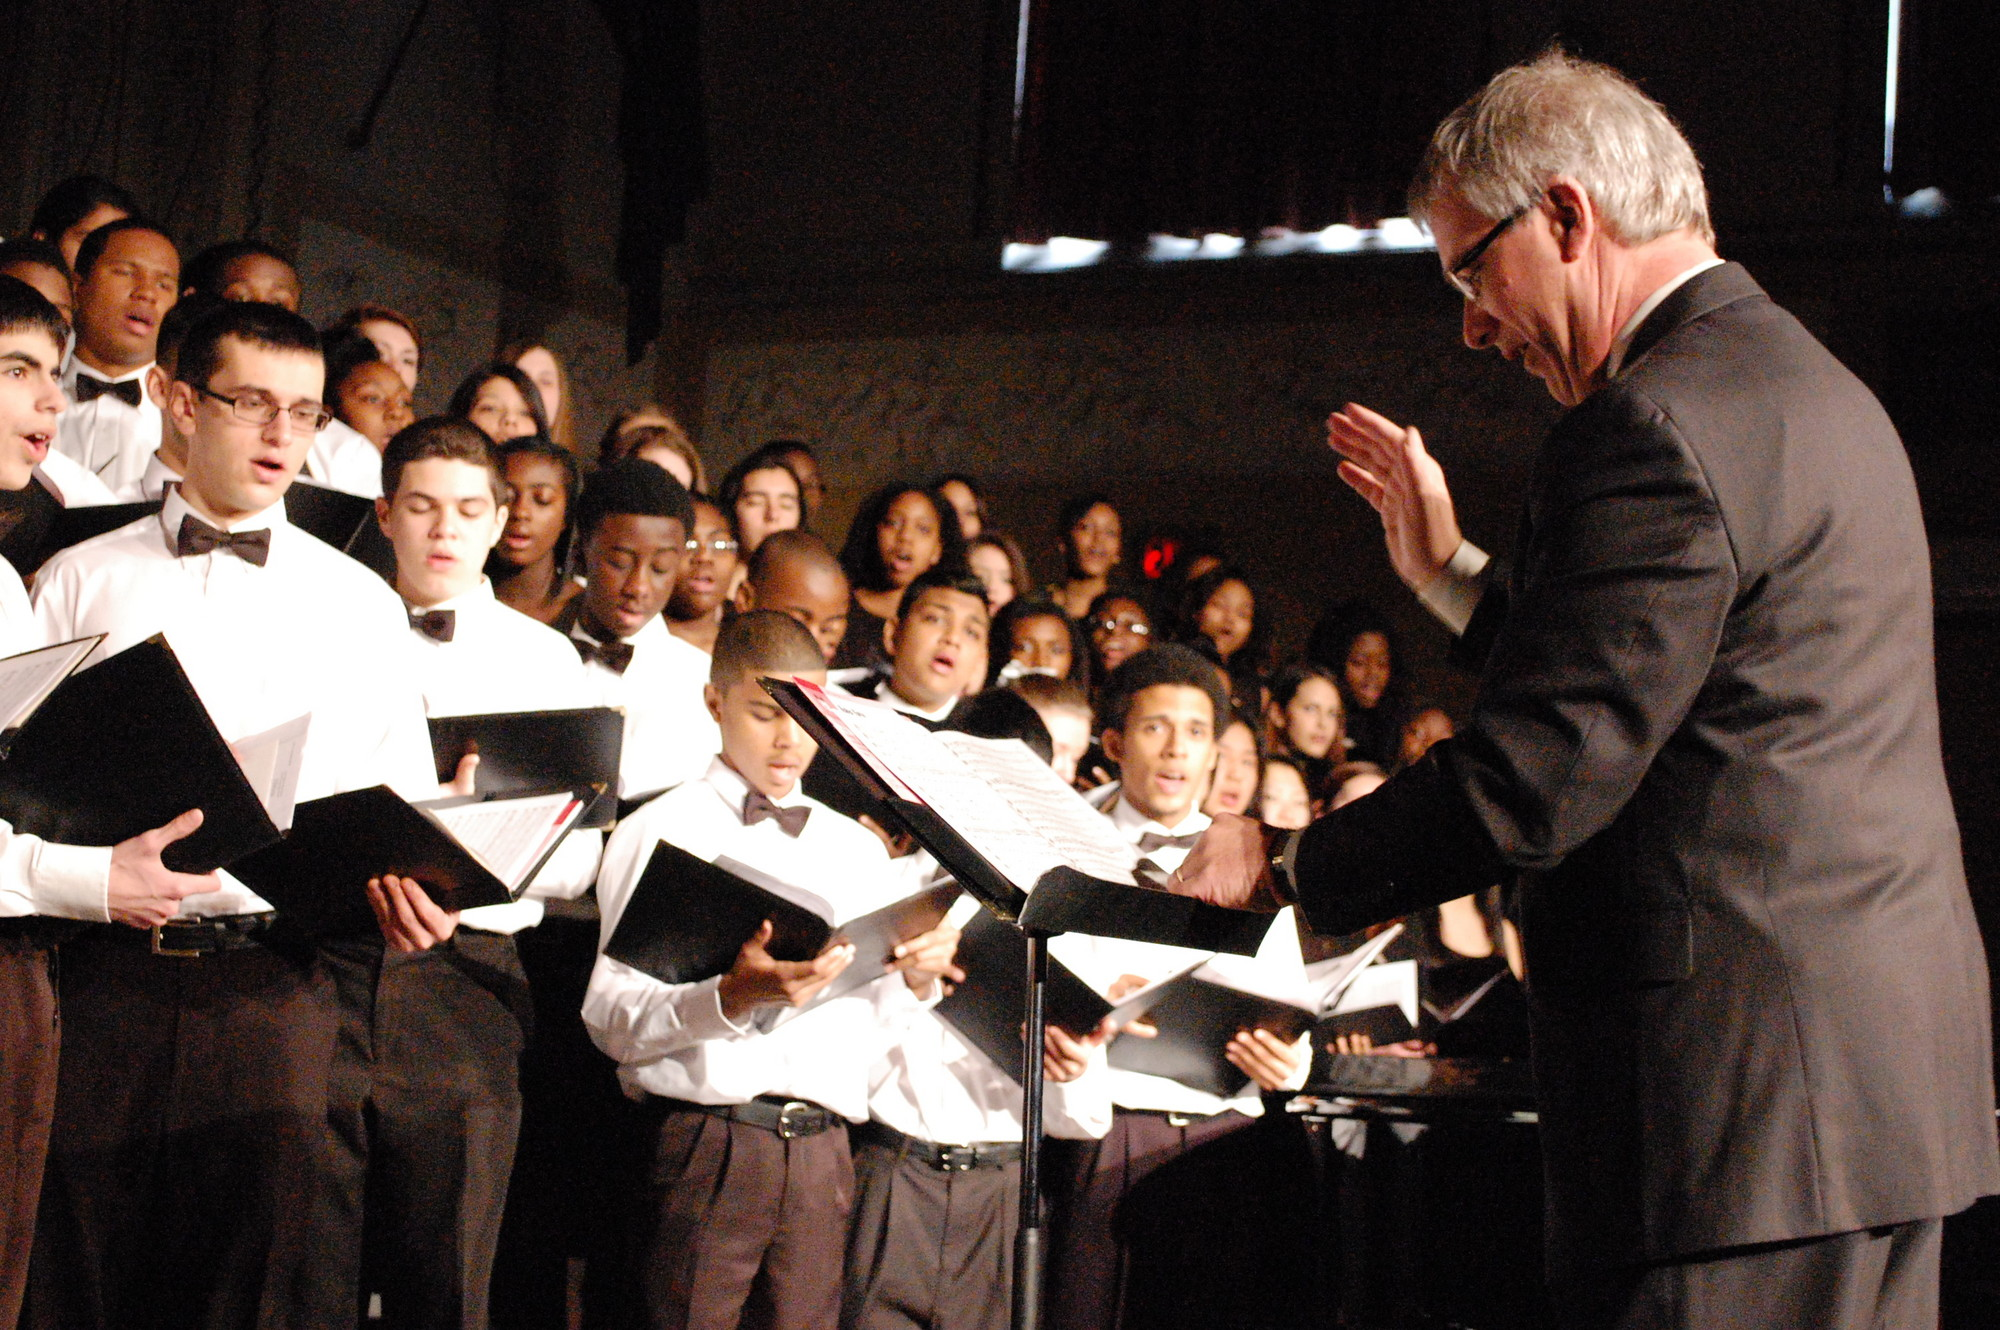 Dr. Thomas Zatorski conducted the District Mixed Chorus.